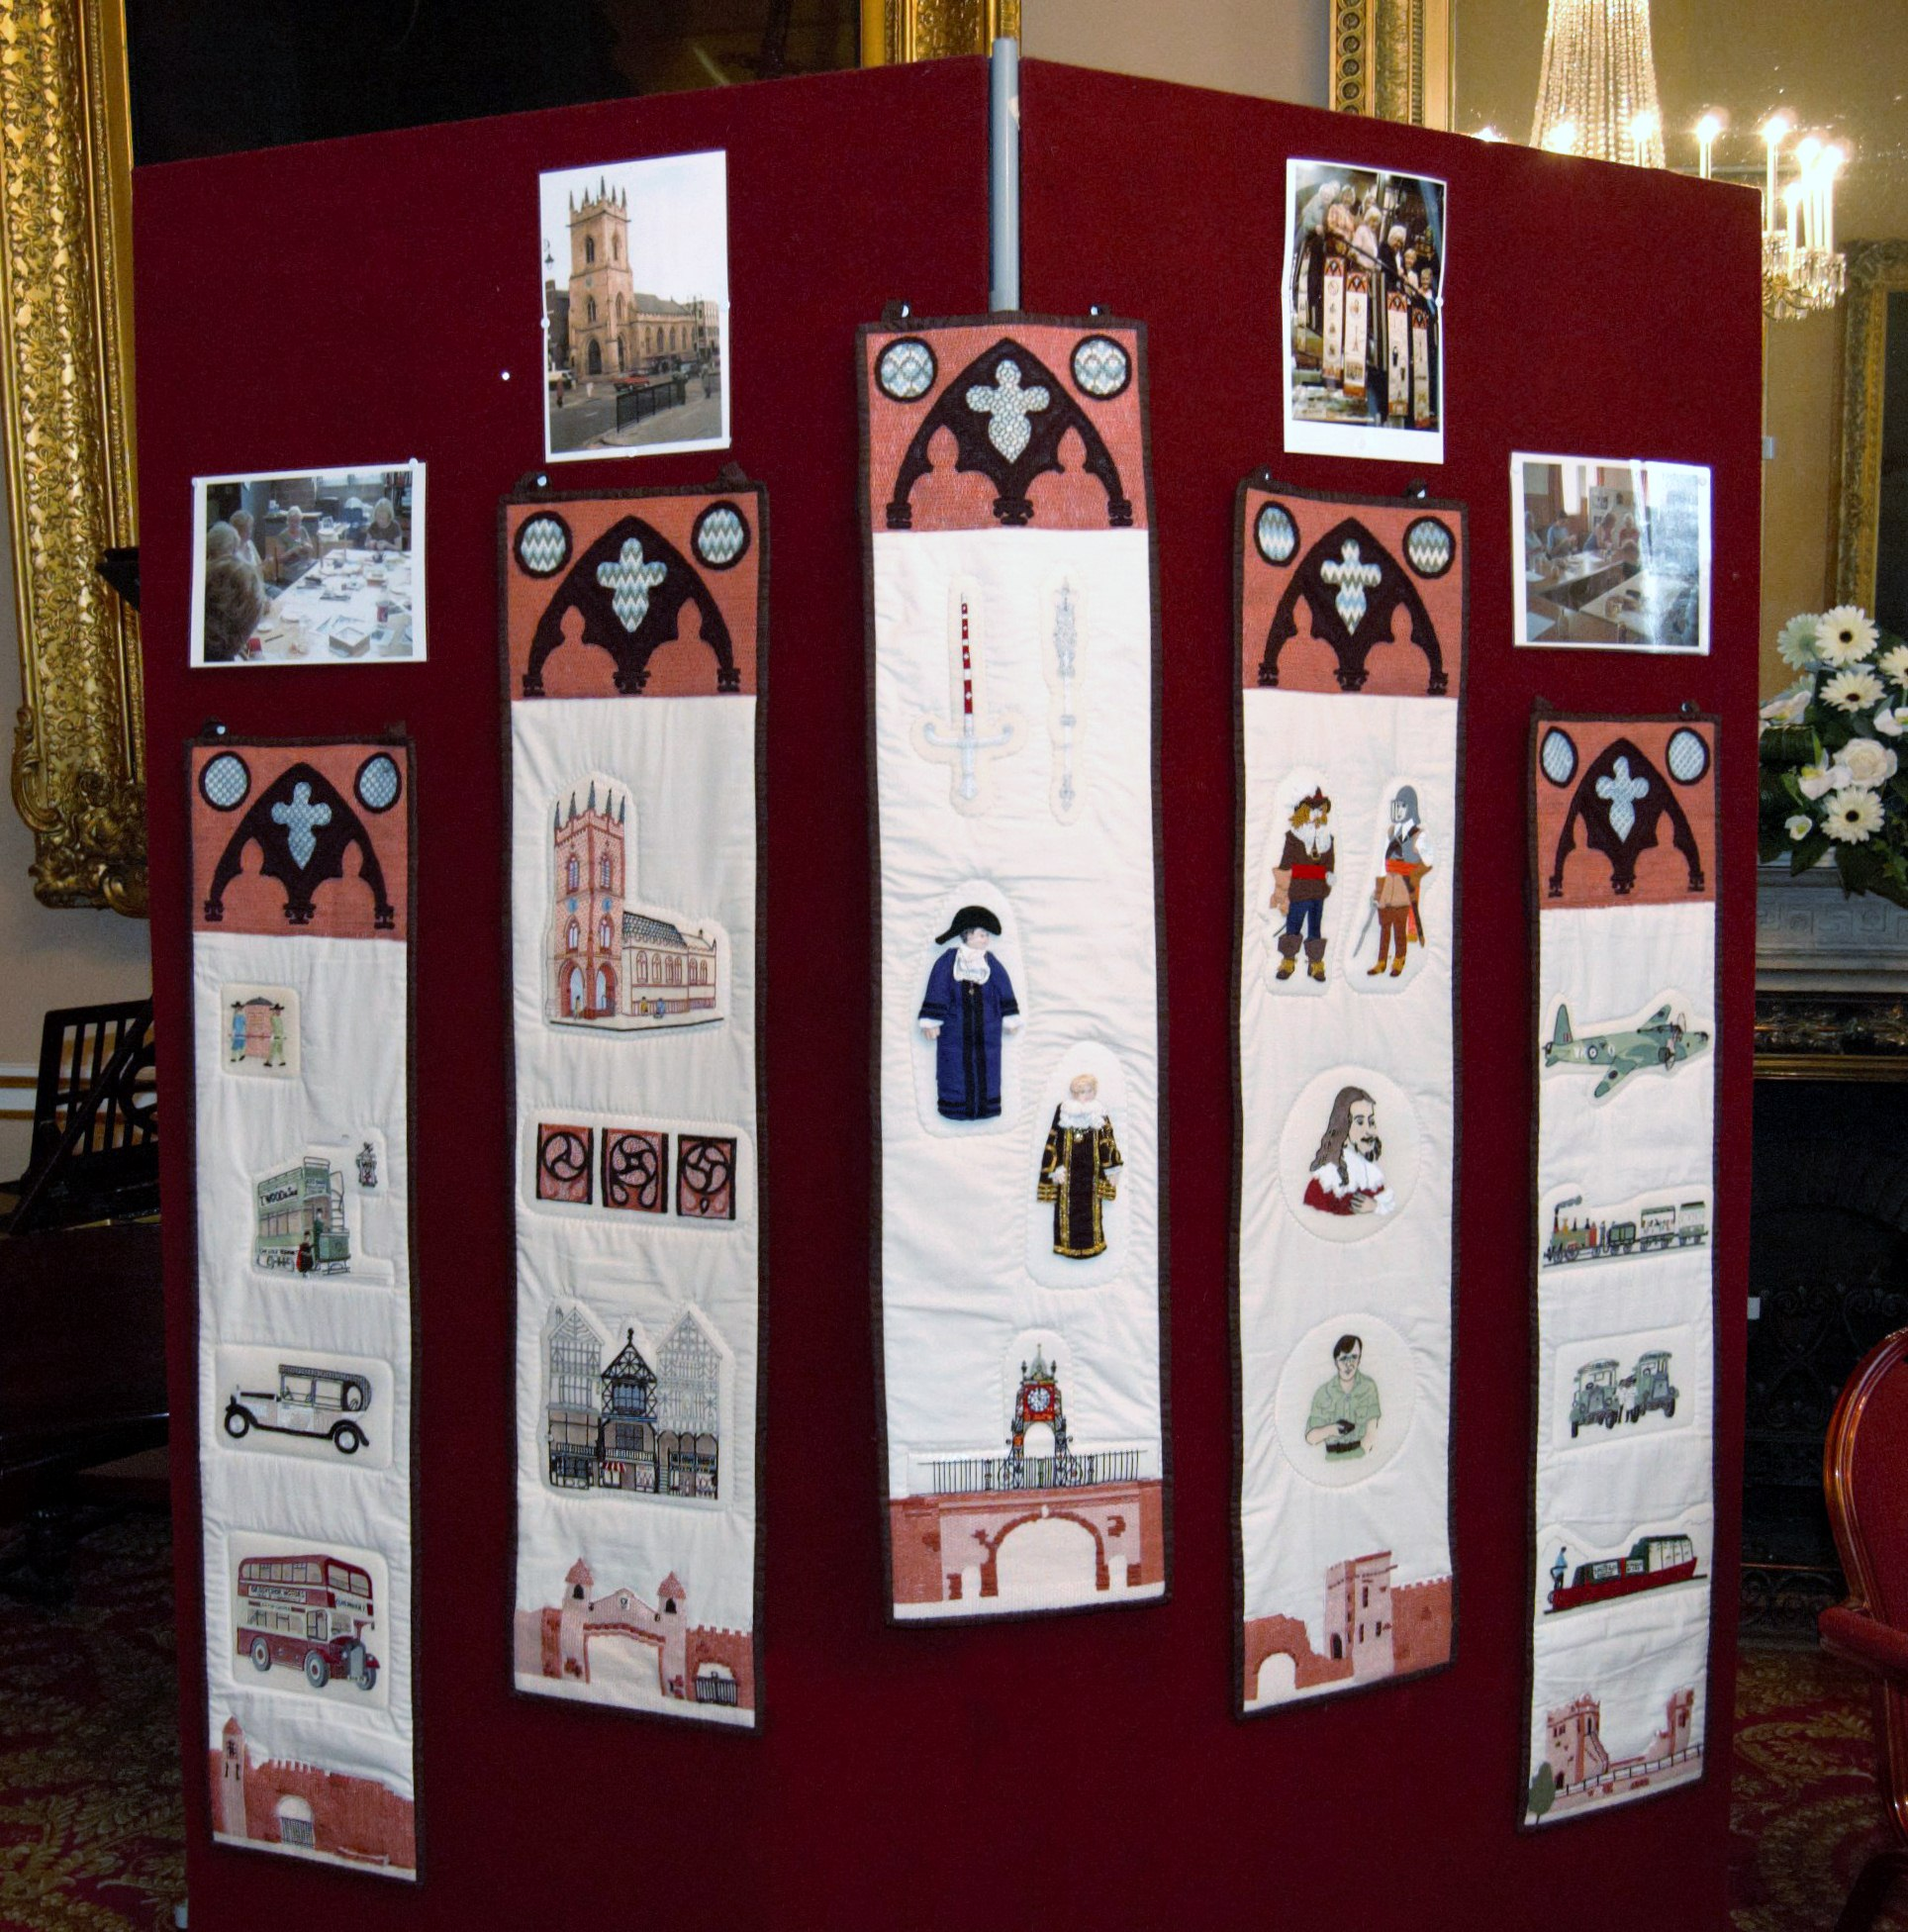 entry to Coats Anchor Award Competition at NW Regional Day 2008 in Liverpool Town Hall